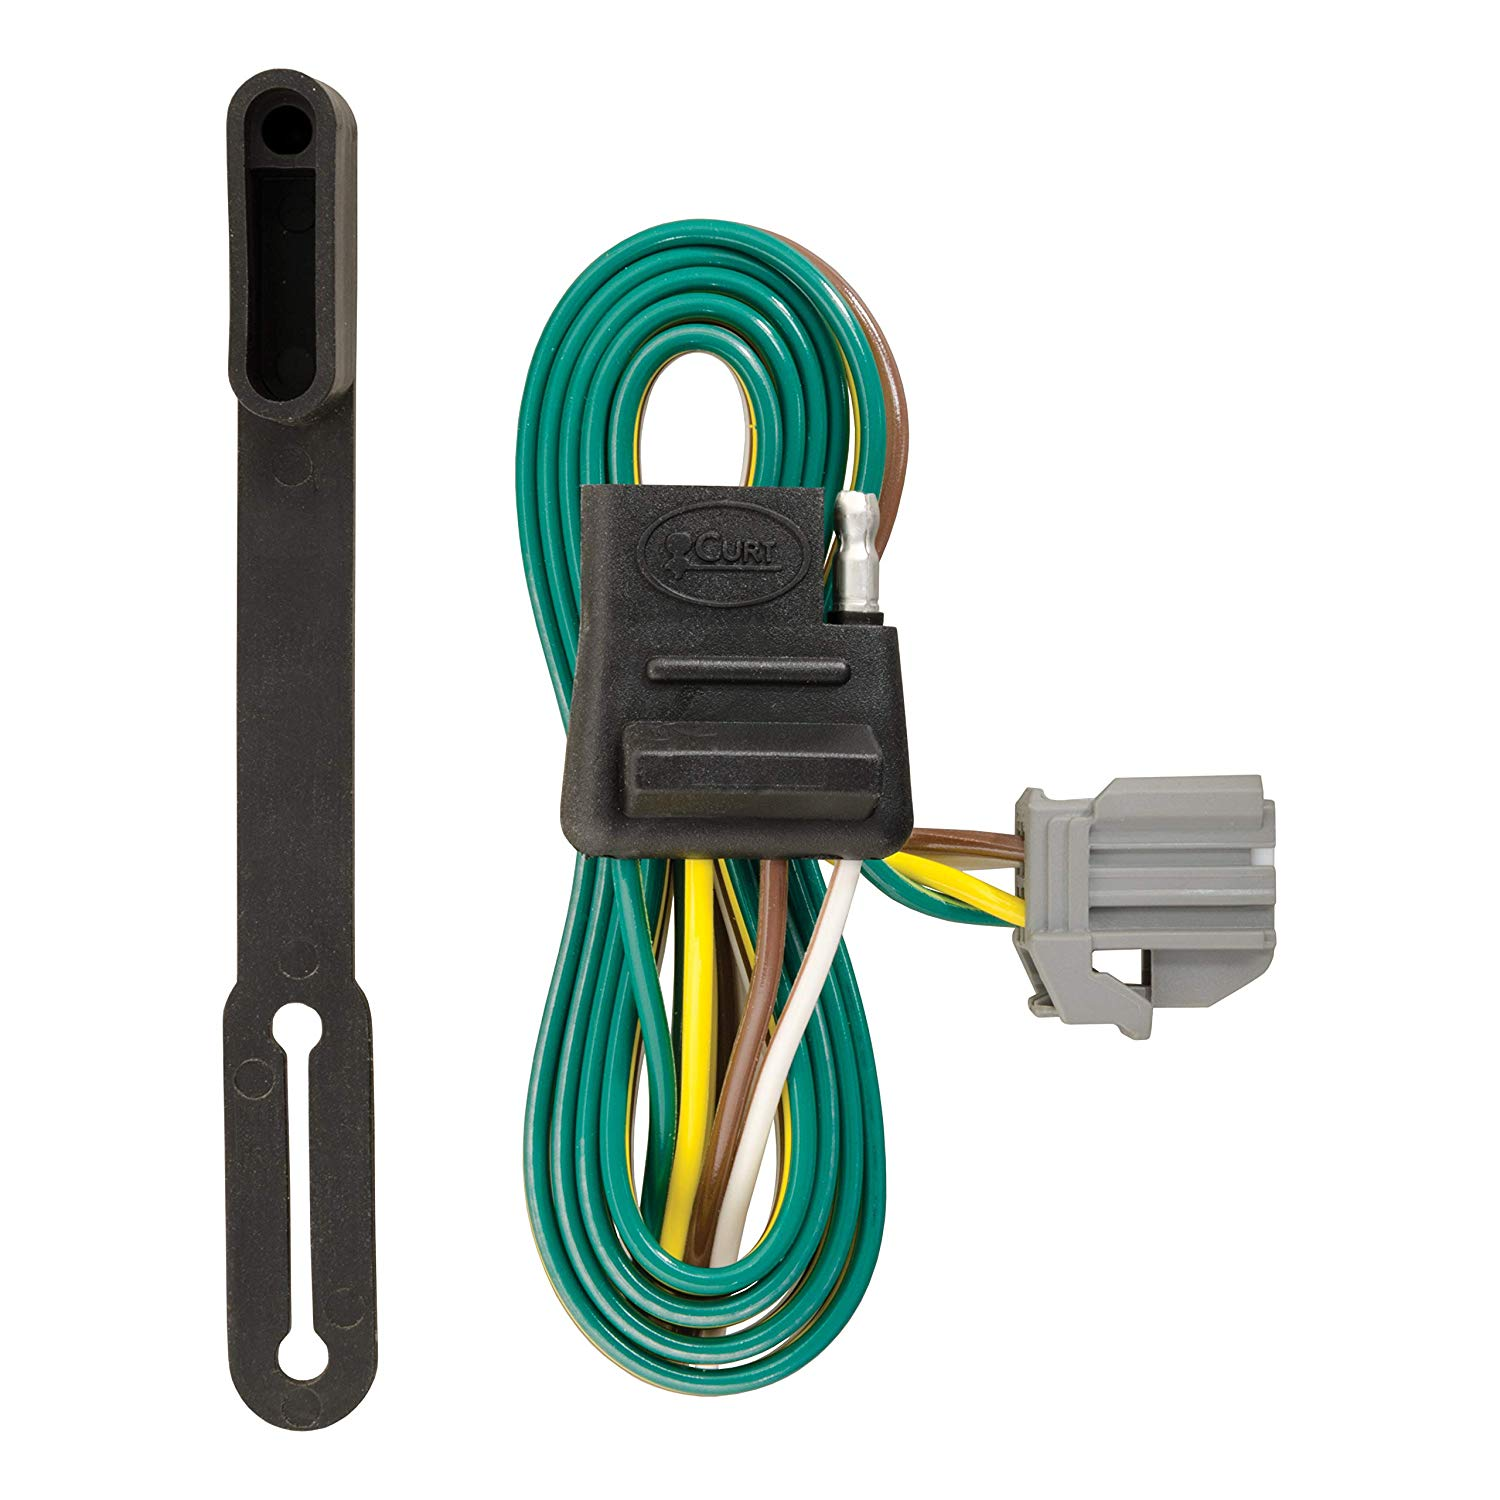 Gmc Trailer Wiring Harness from i5.walmartimages.com